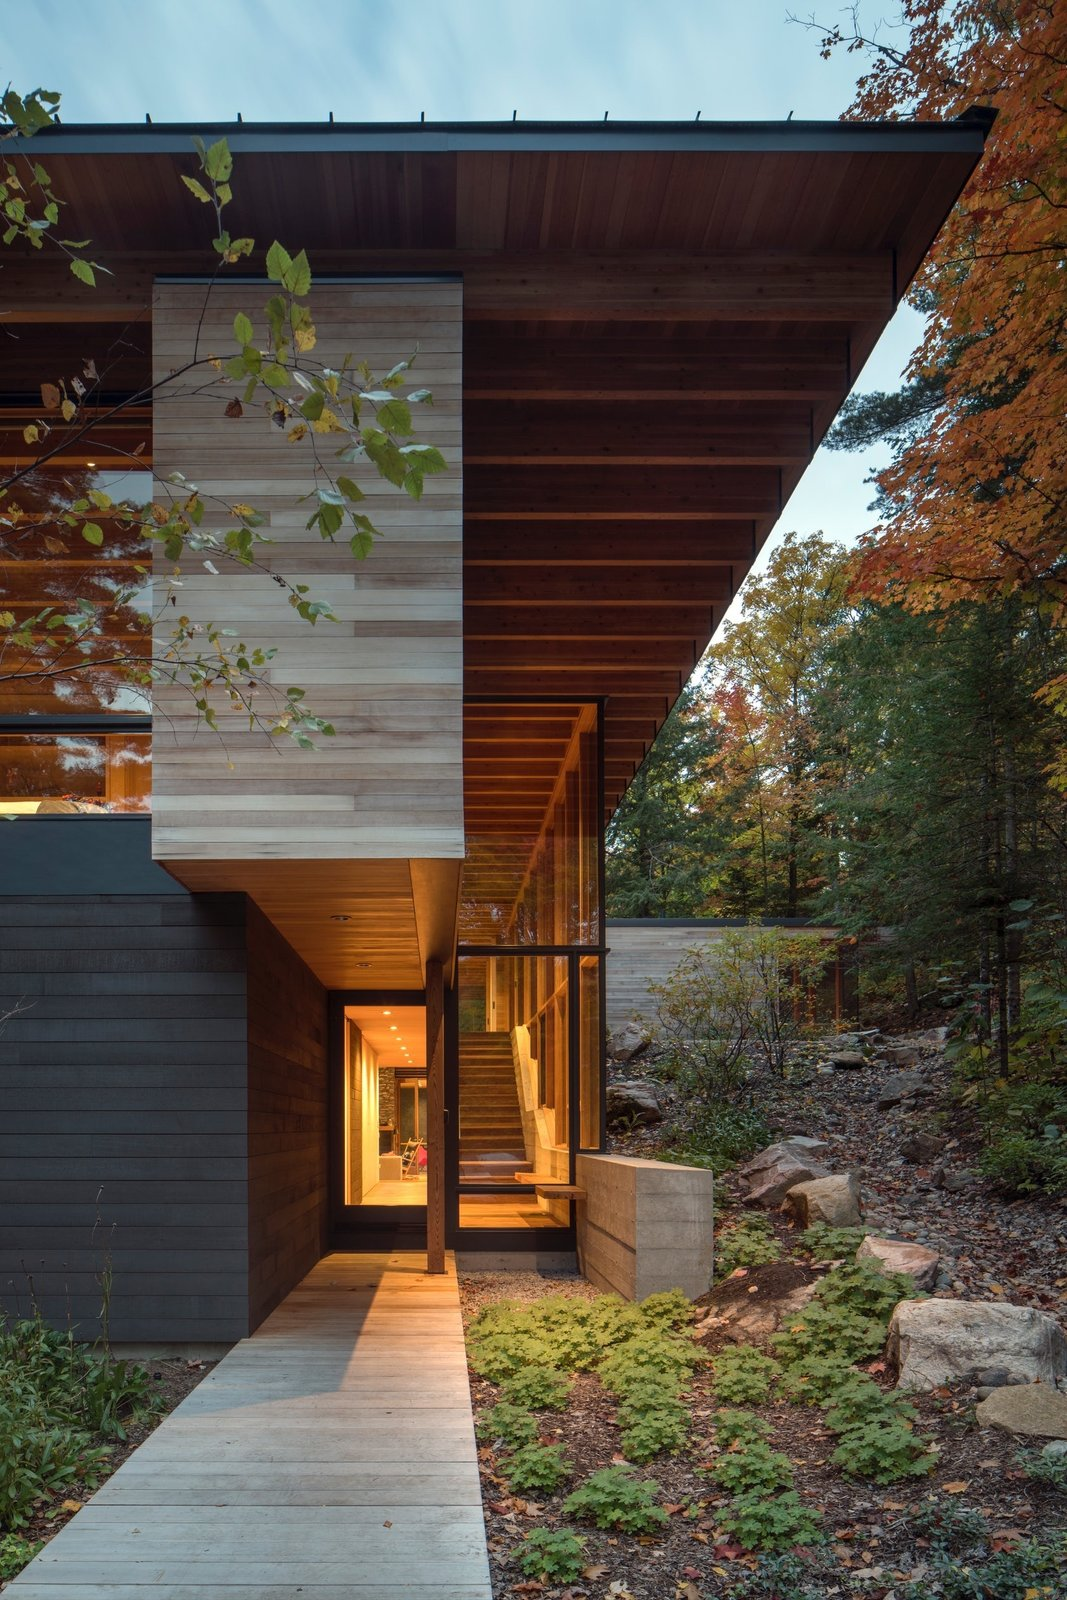 Exterior, Wood Siding Material, Cabin Building Type, Metal Roof Material, and Flat RoofLine  The Bear Stand